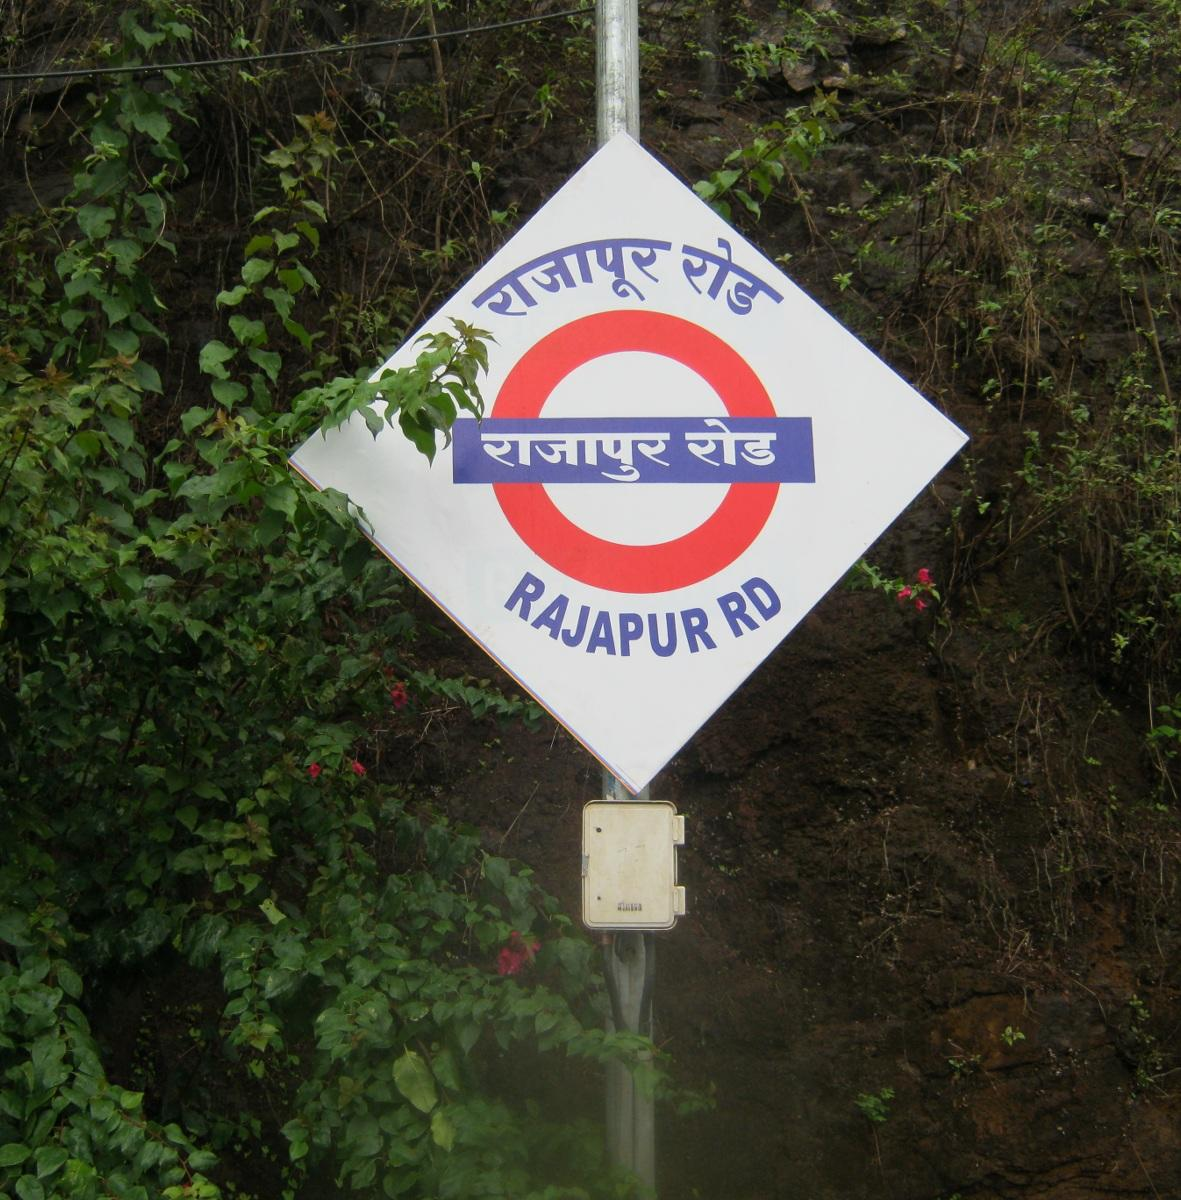 2 Channel Wdm: Rajapur Road Railway Station Picture & Video Gallery